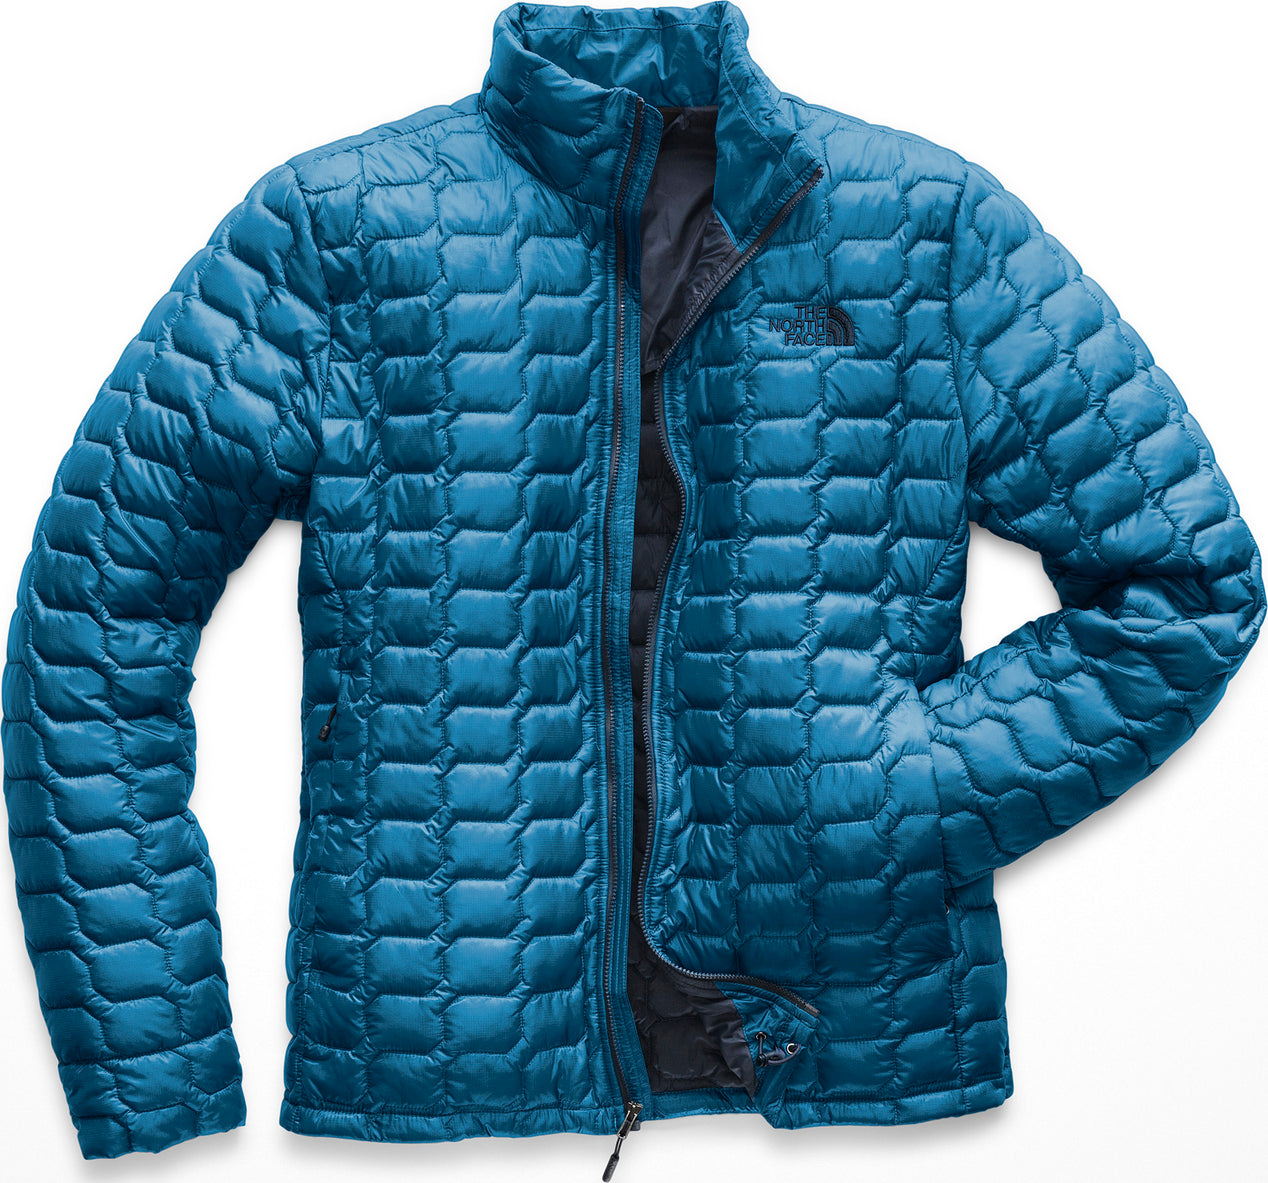 4c1ffb28b The North Face ThermoBall Jacket - Men's